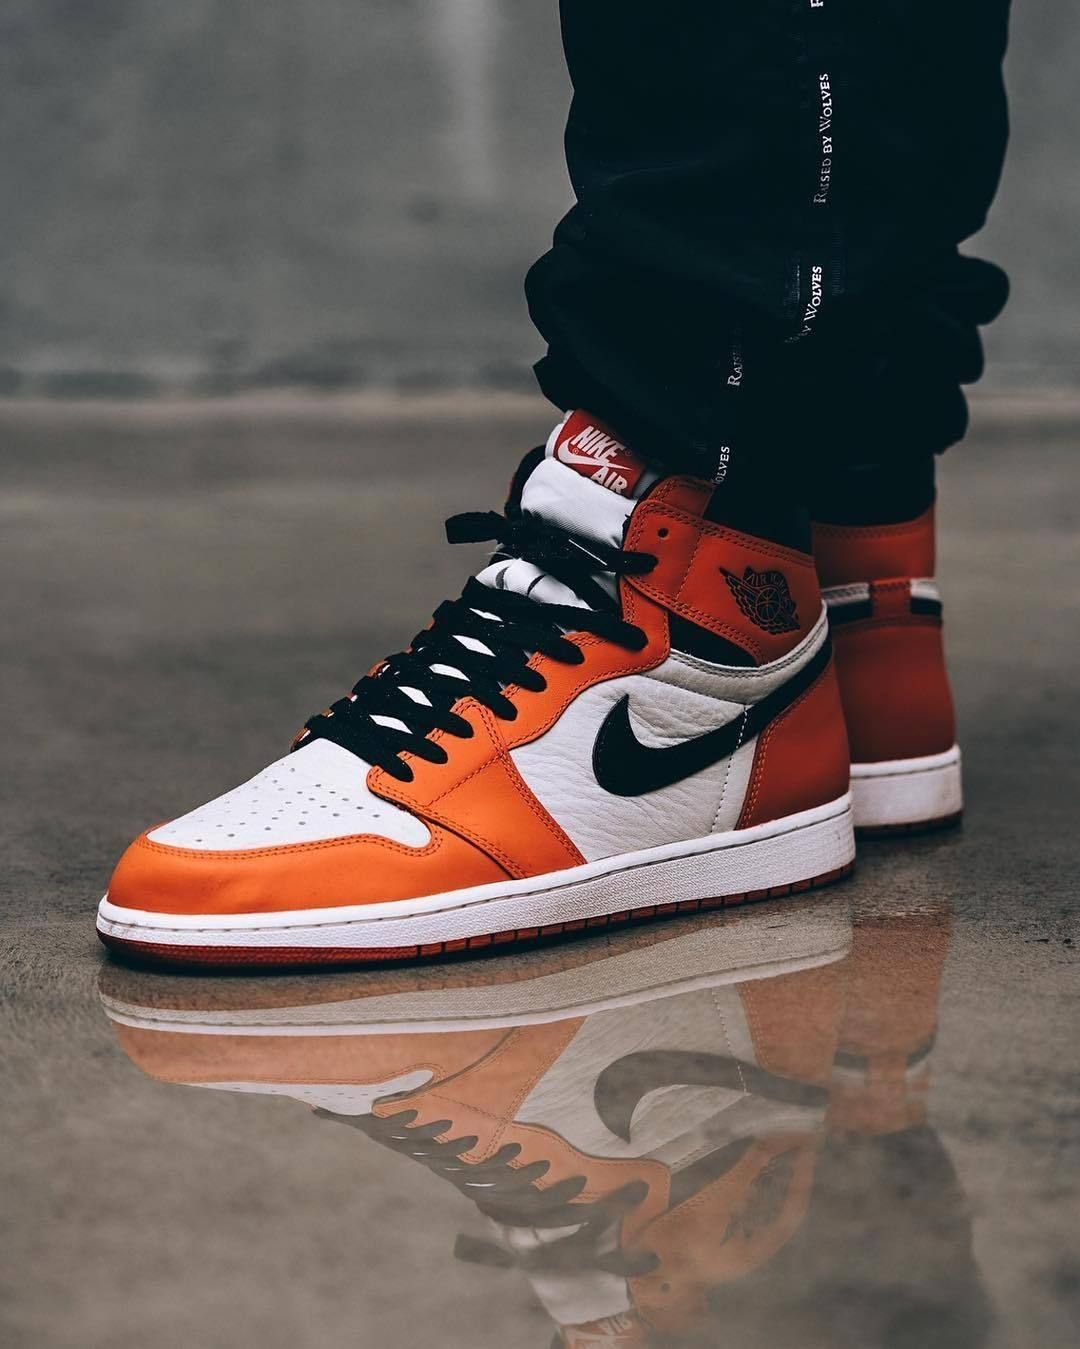 Nike Air Jordan 1 Shattered Backboard 2 0 2016 New Nike Shoes